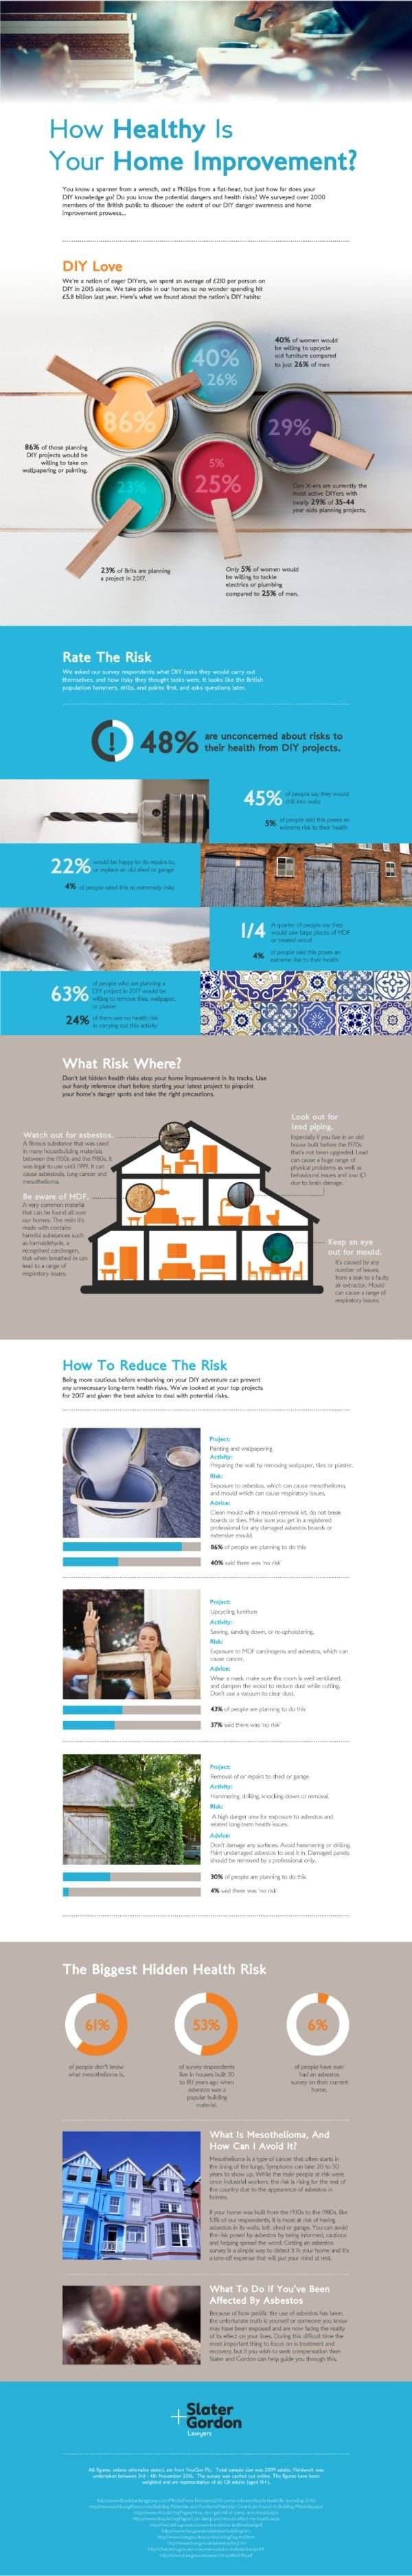 Is DIY Dangerous so how healthy IS your home improvement. Find out the hazards involved and how to stay safe doing DIY